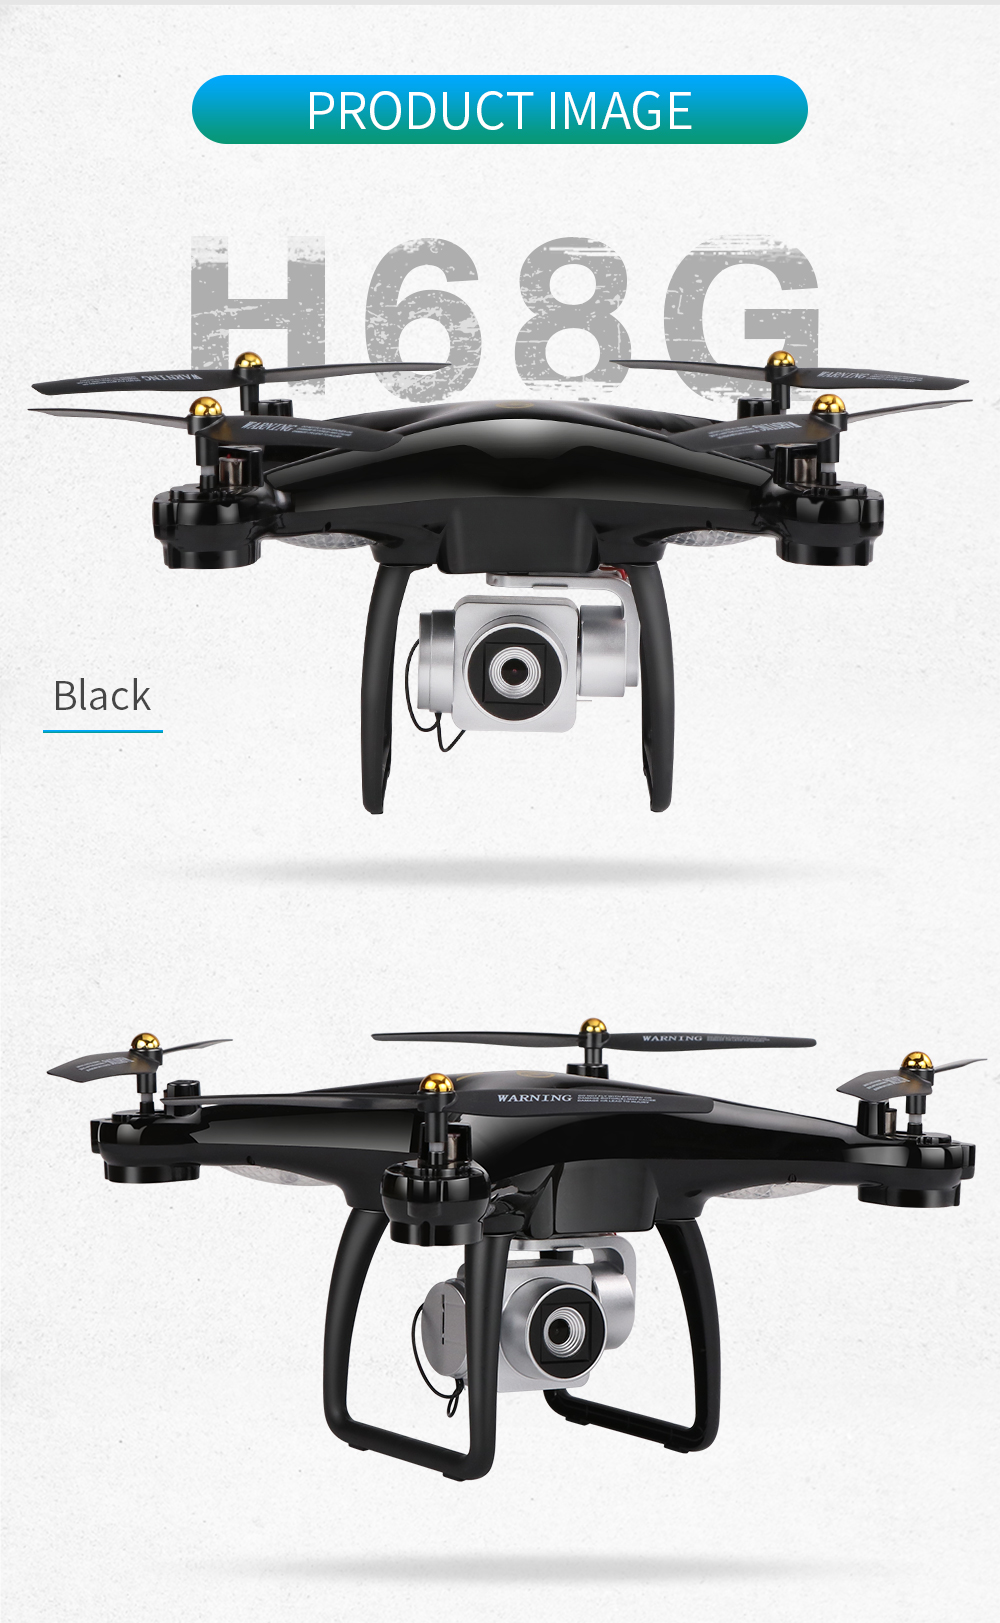 JJRC H68G GPS Drone With Camera 1080P HD 5G Wifi FPV Quadrocopter RC Helicopter Professional Dron Compass Auto Follow Quadcopter 21